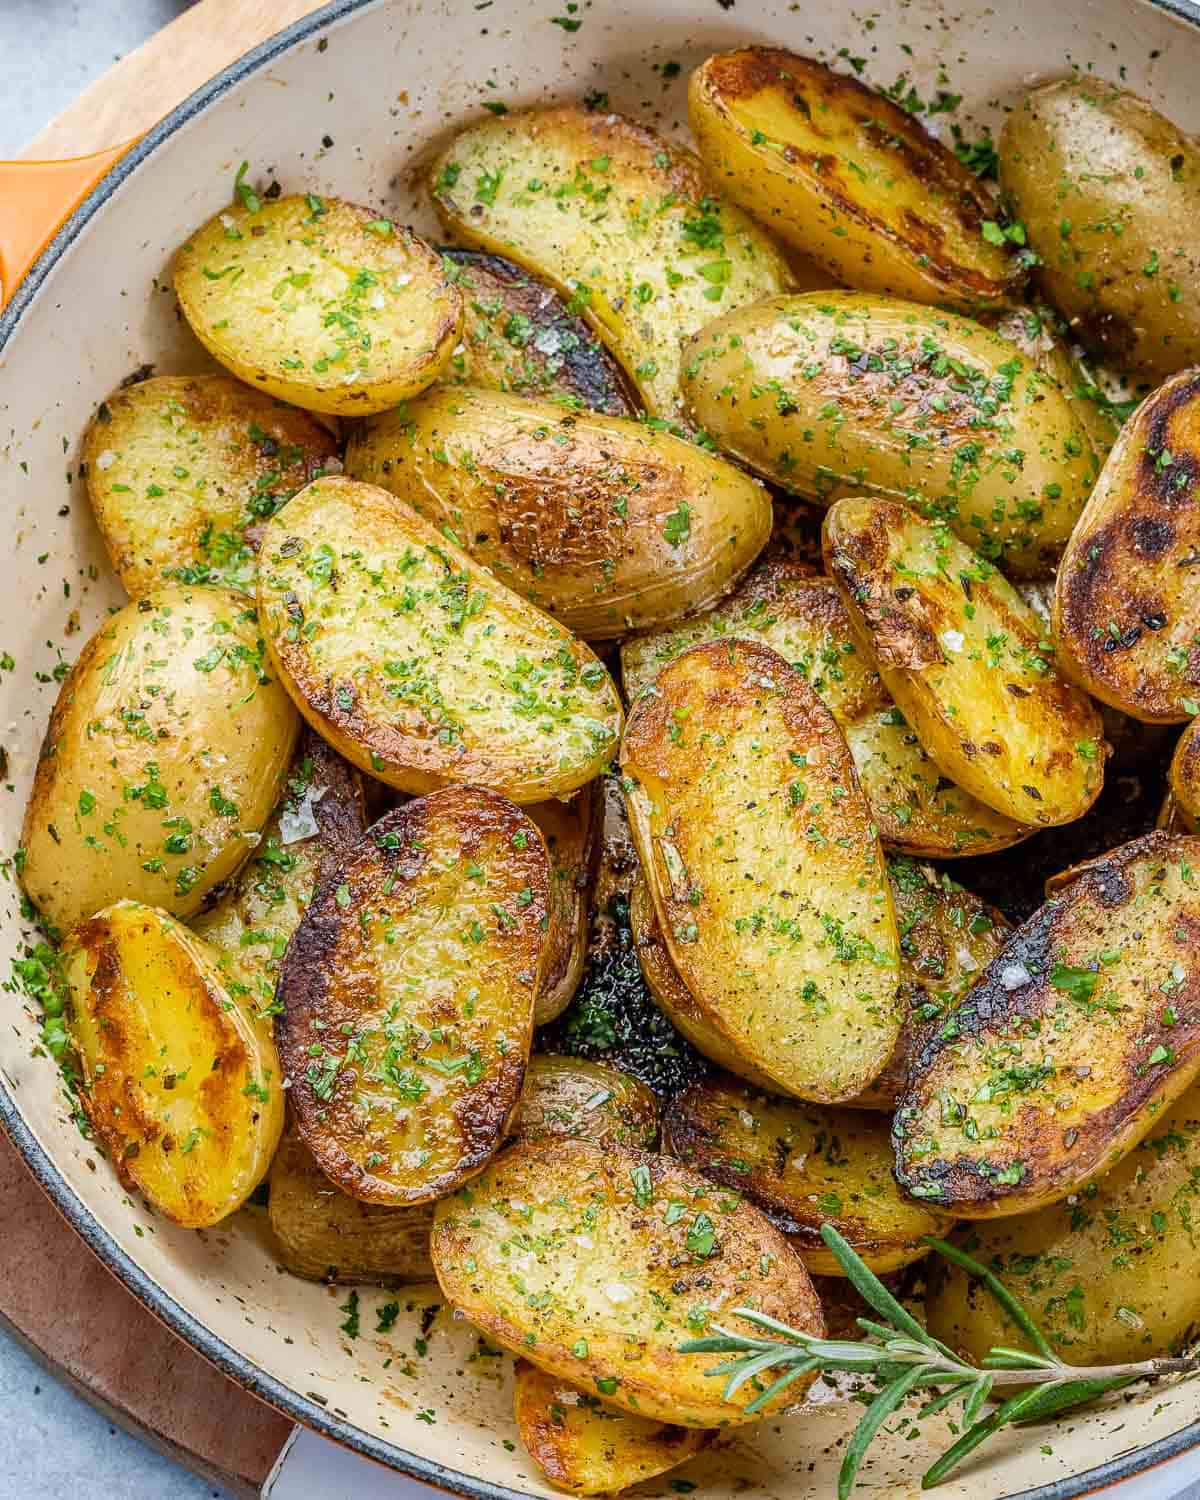 top view of roasted potatoes in an orange skillet